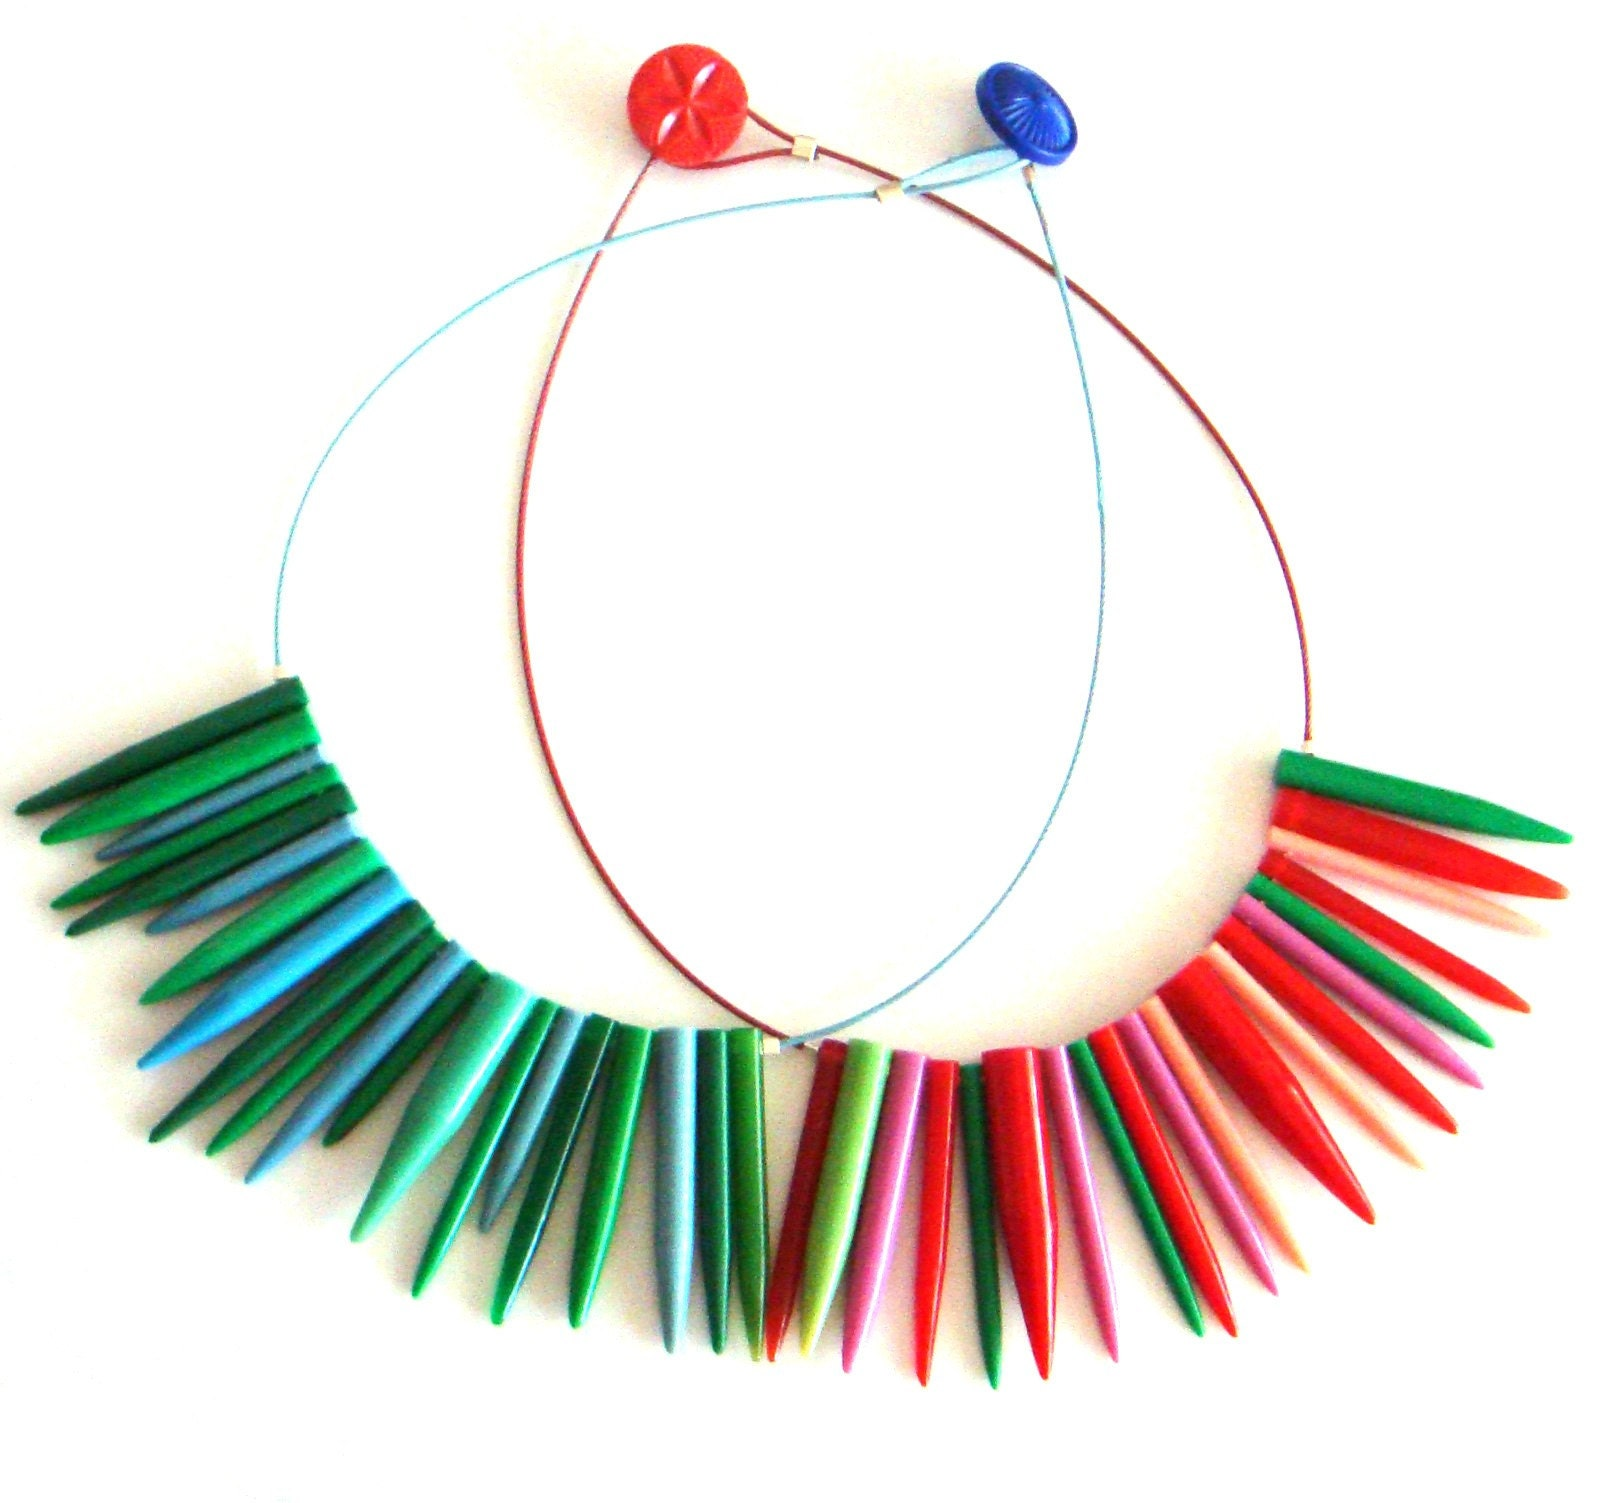 Knitwit Necklace by Liana Kabel